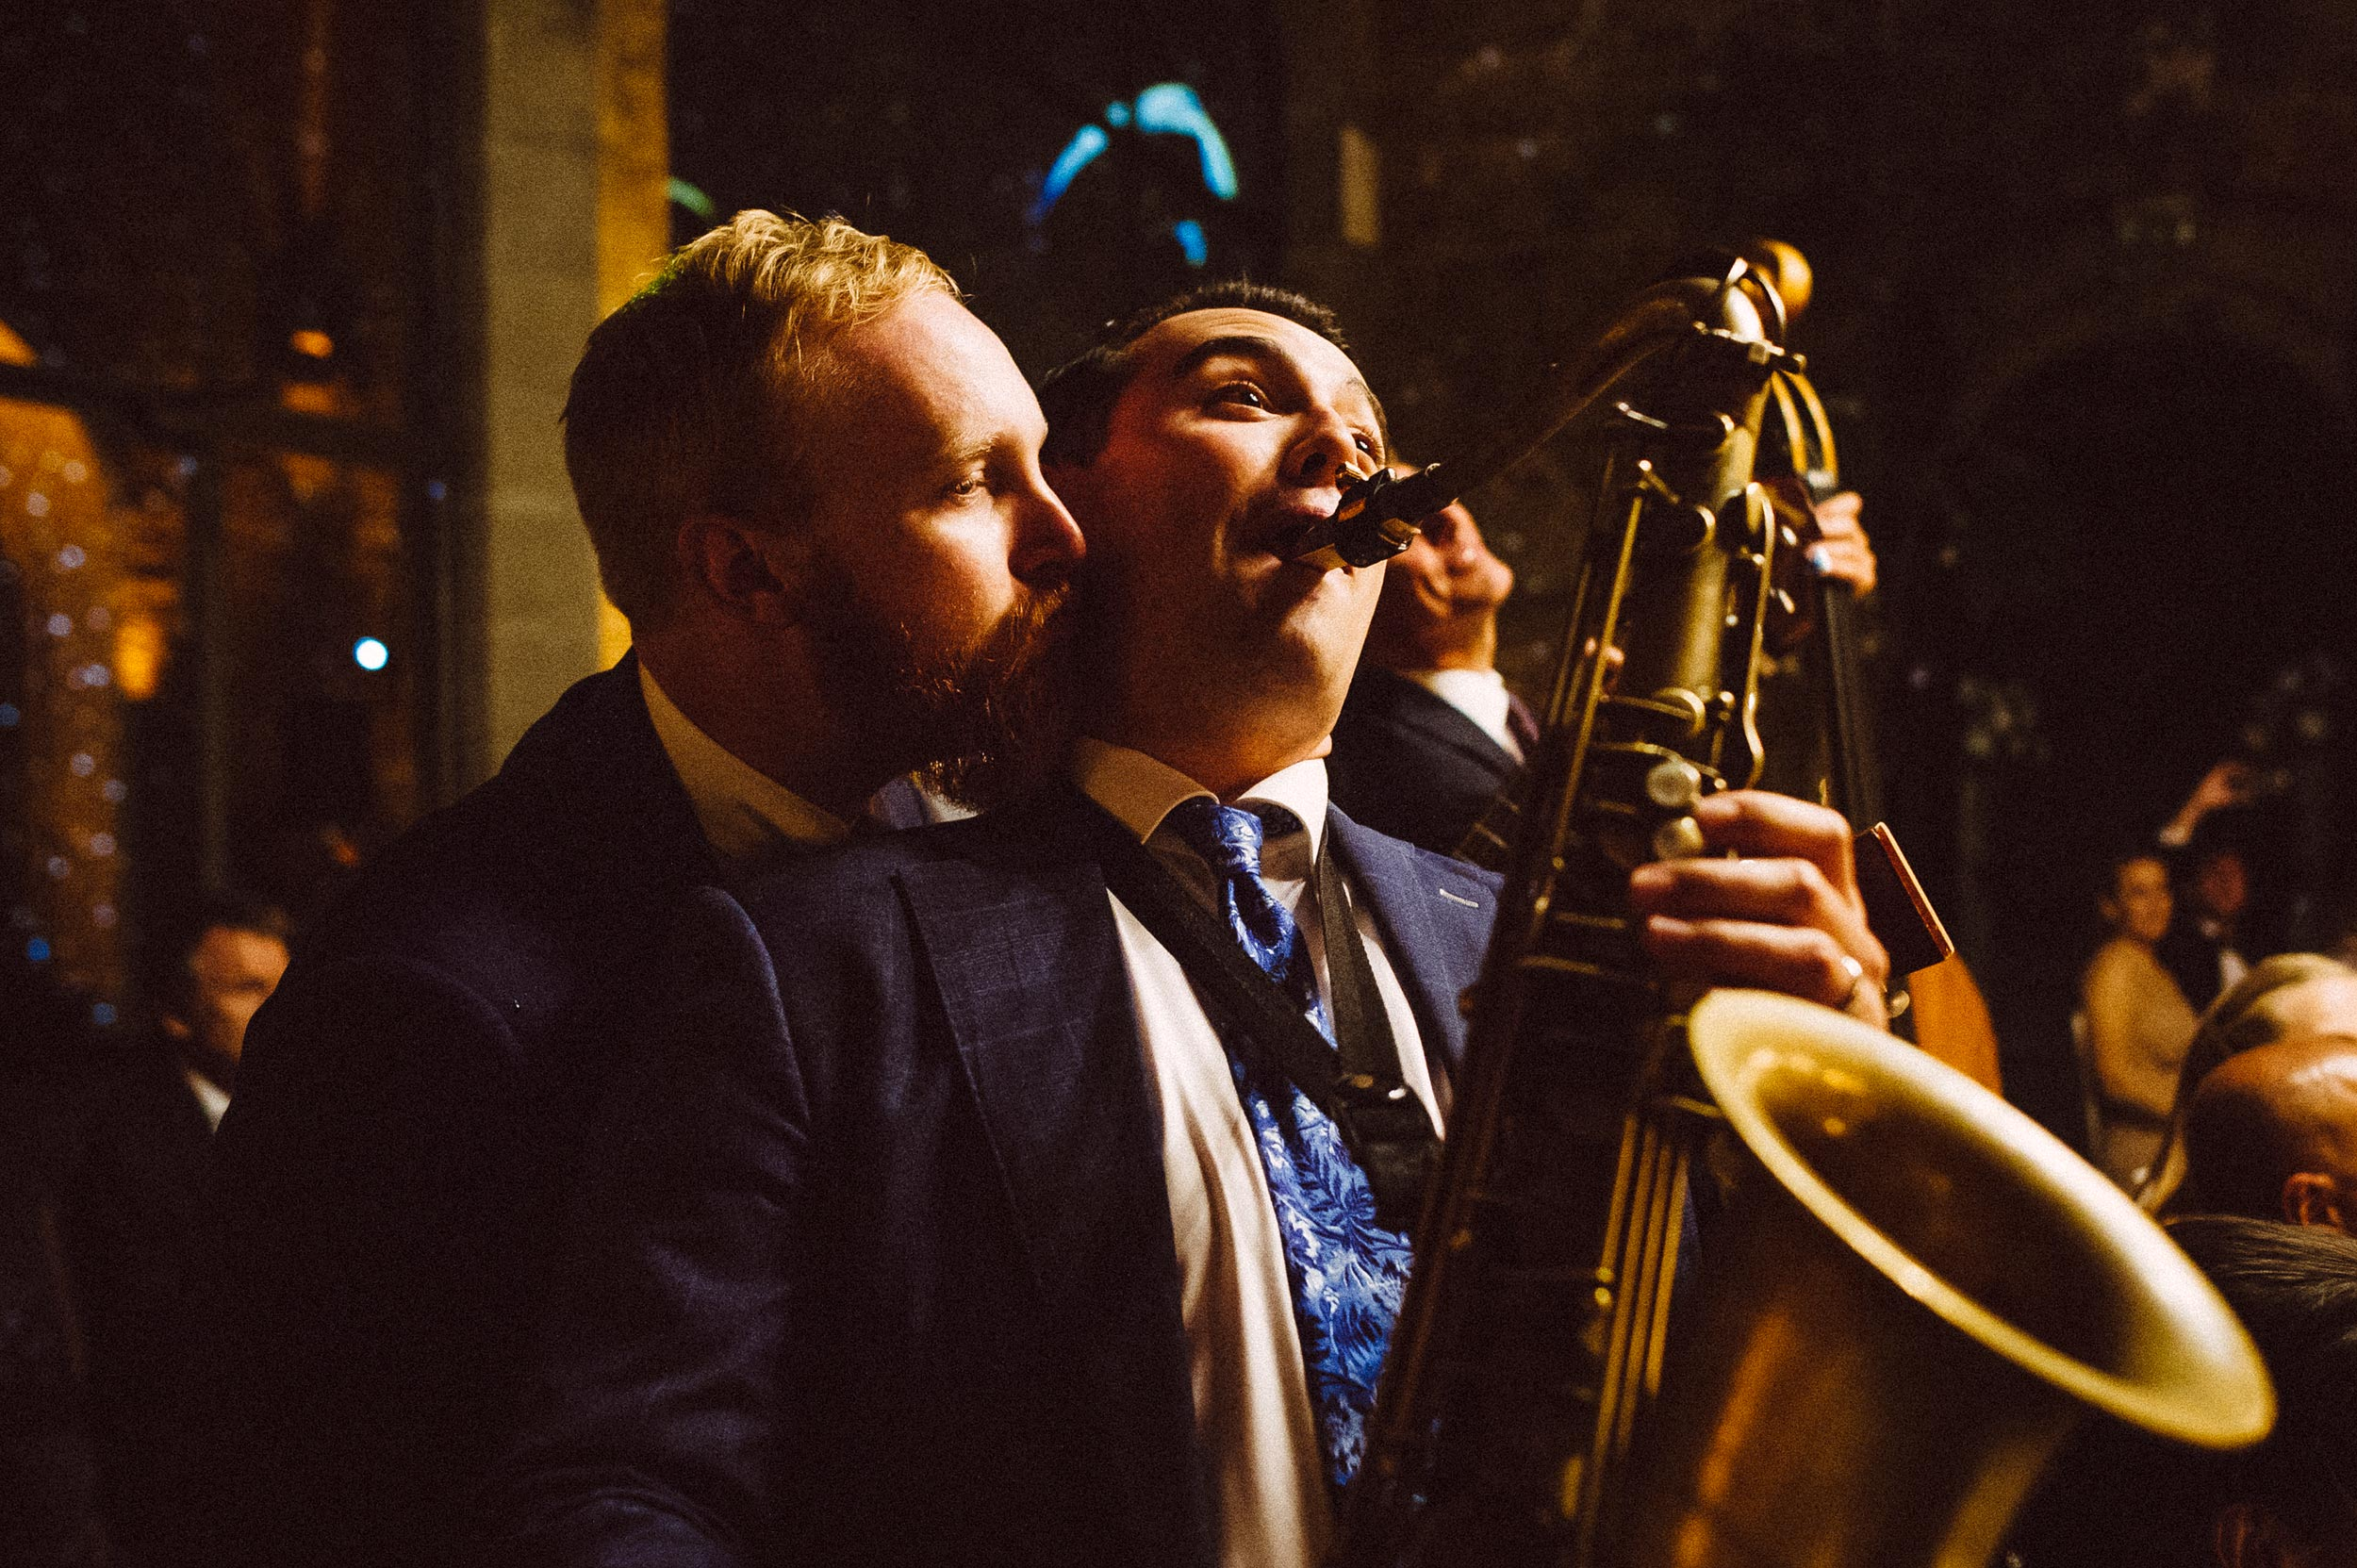 the-london-essentials-performing-in-tuscany-vincigliata-castle-documentary-wedding-photographer-Alessandro-Avenali.jpg